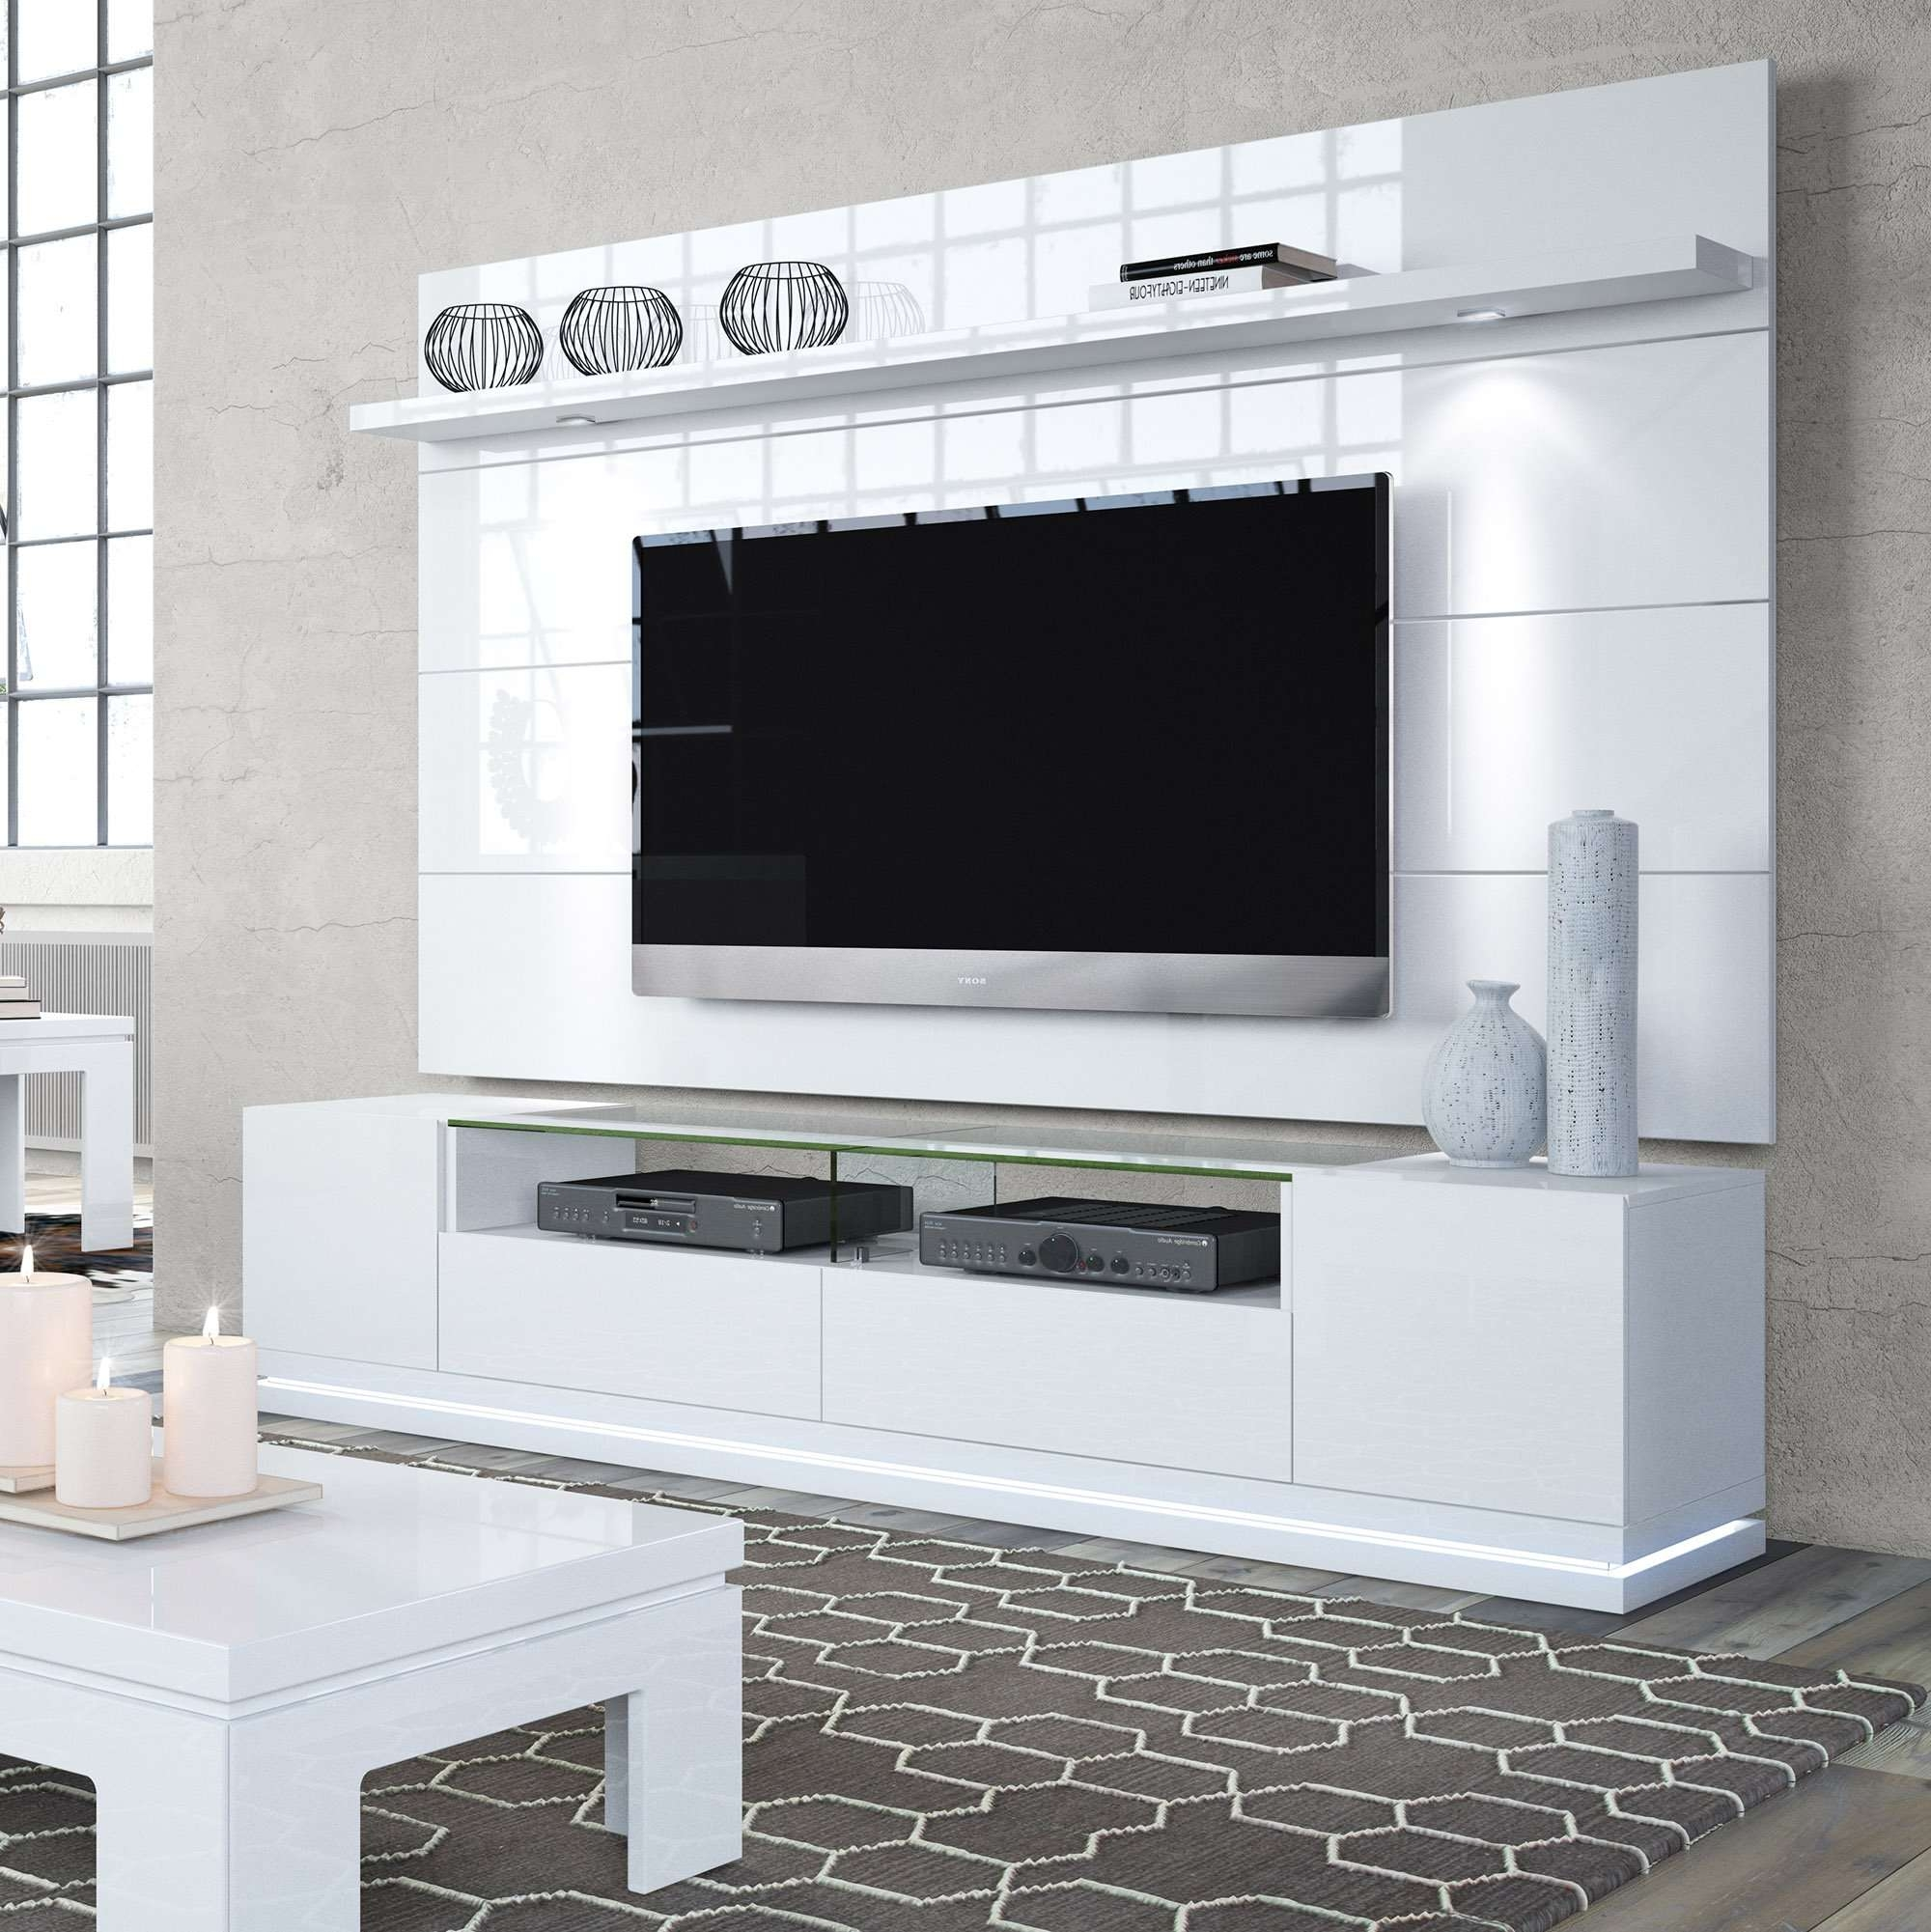 Vanderbilt White Gloss Tv Stand & Cabrini 2.2 Floating Wall Tv Inside Tv Cabinets Gloss (Gallery 4 of 20)